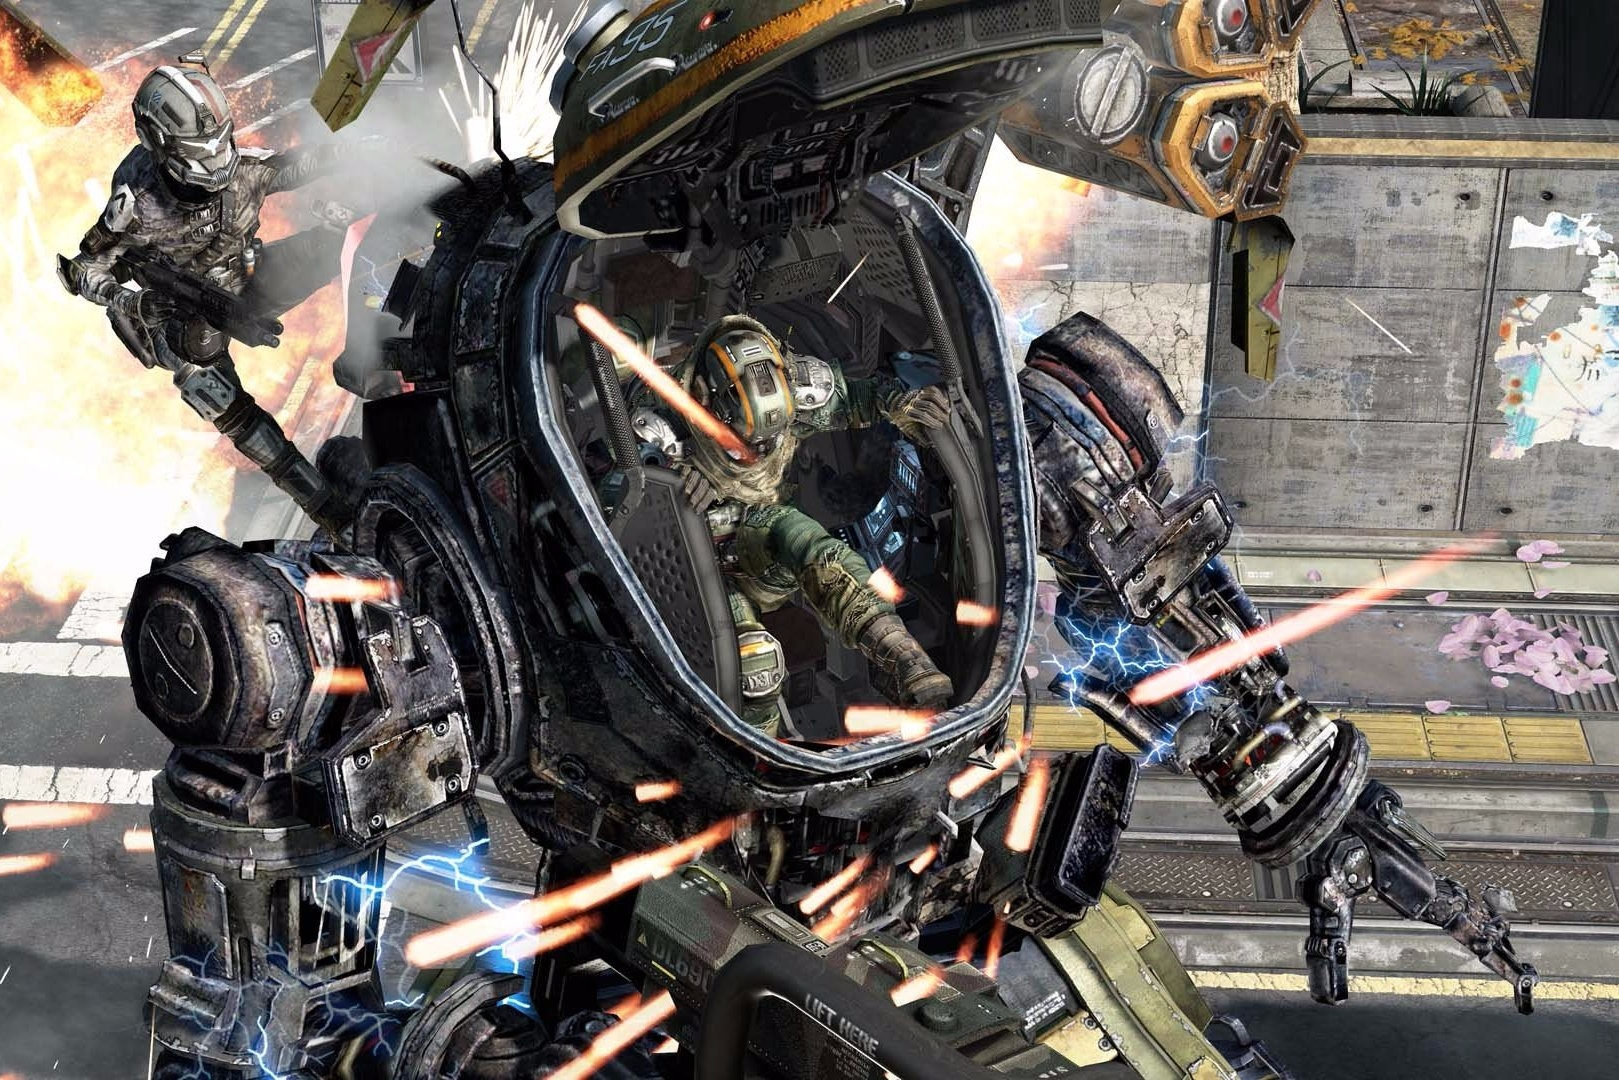 Modojo | Titanfall Is Headed To Mobile Devices